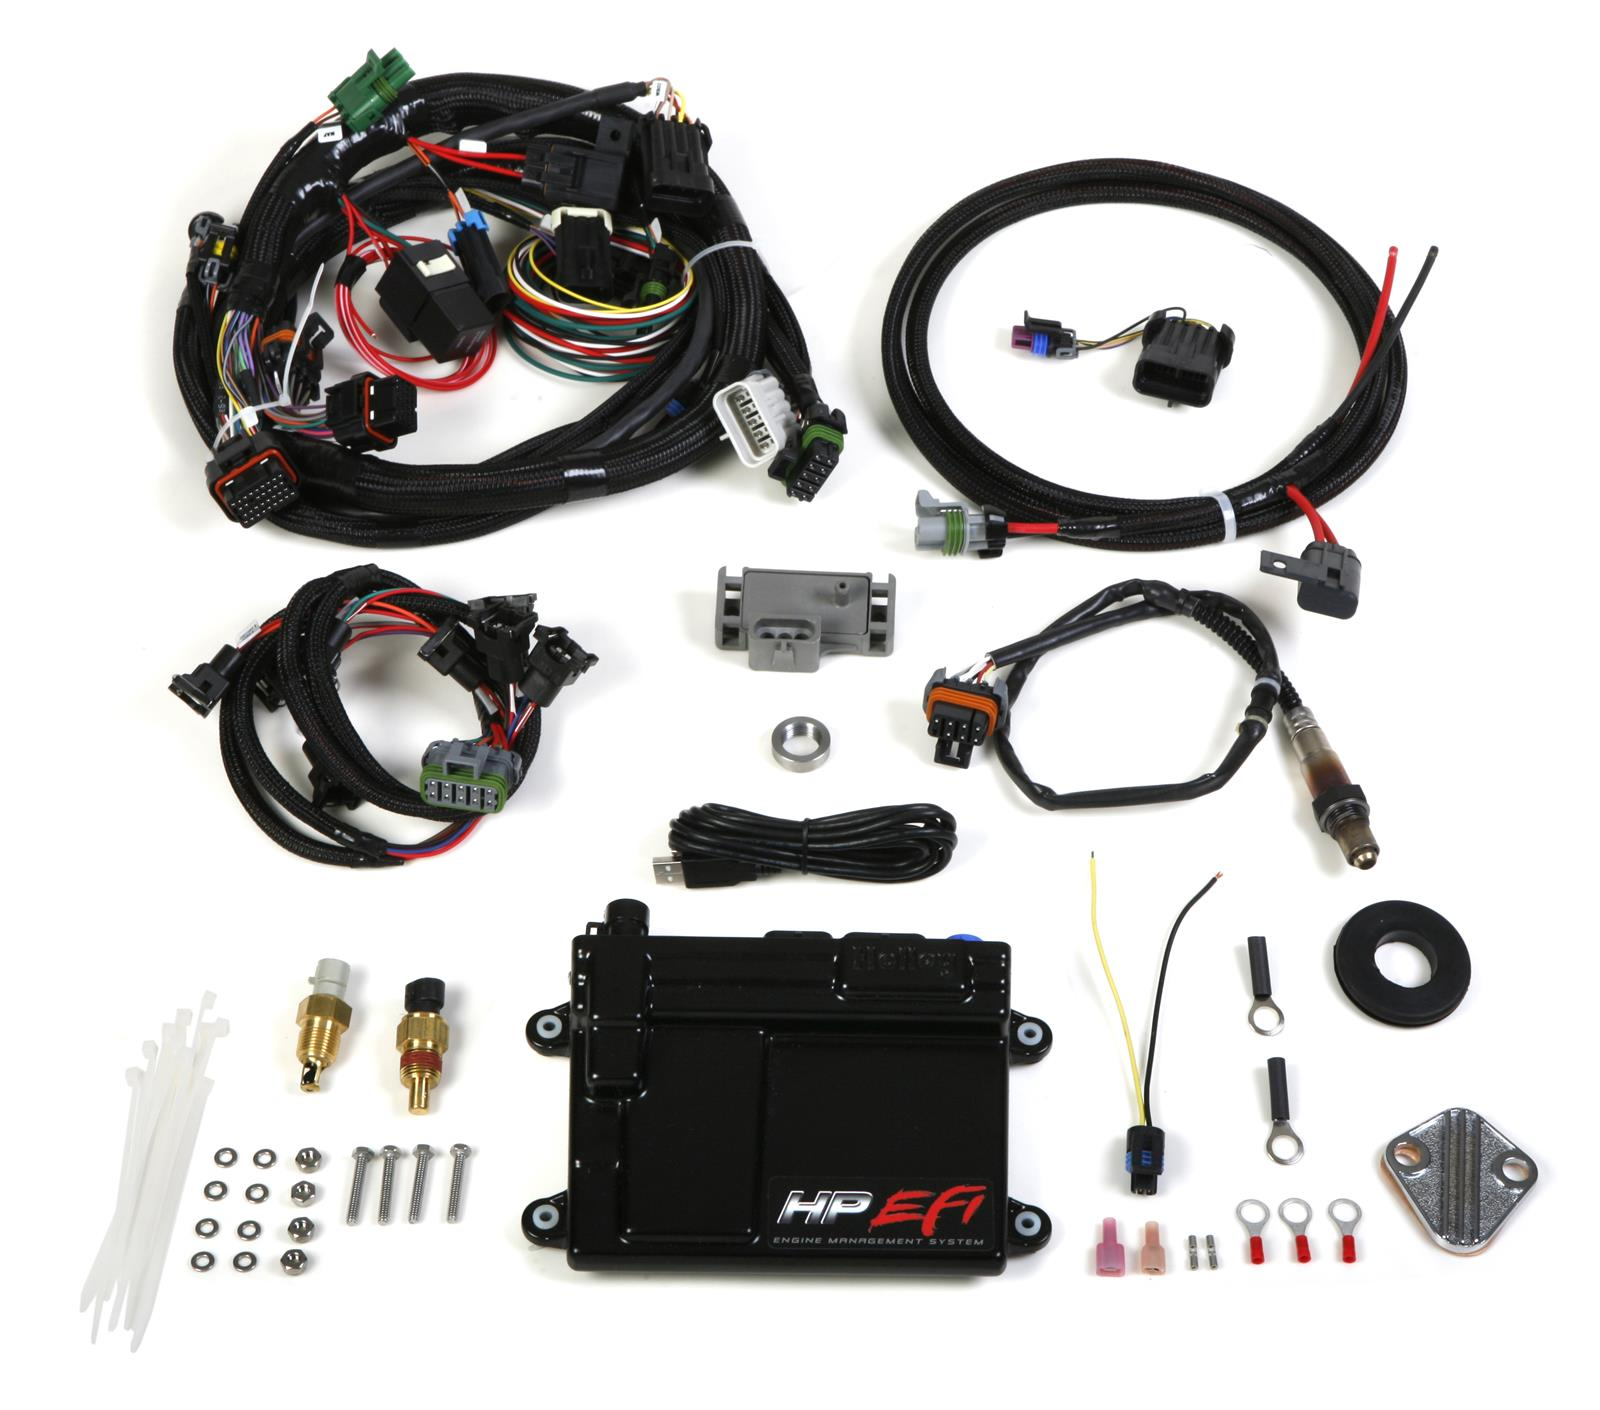 hight resolution of holley hp efi ecu and harness kits 550 601 free shipping on orders over 99 at summit racing